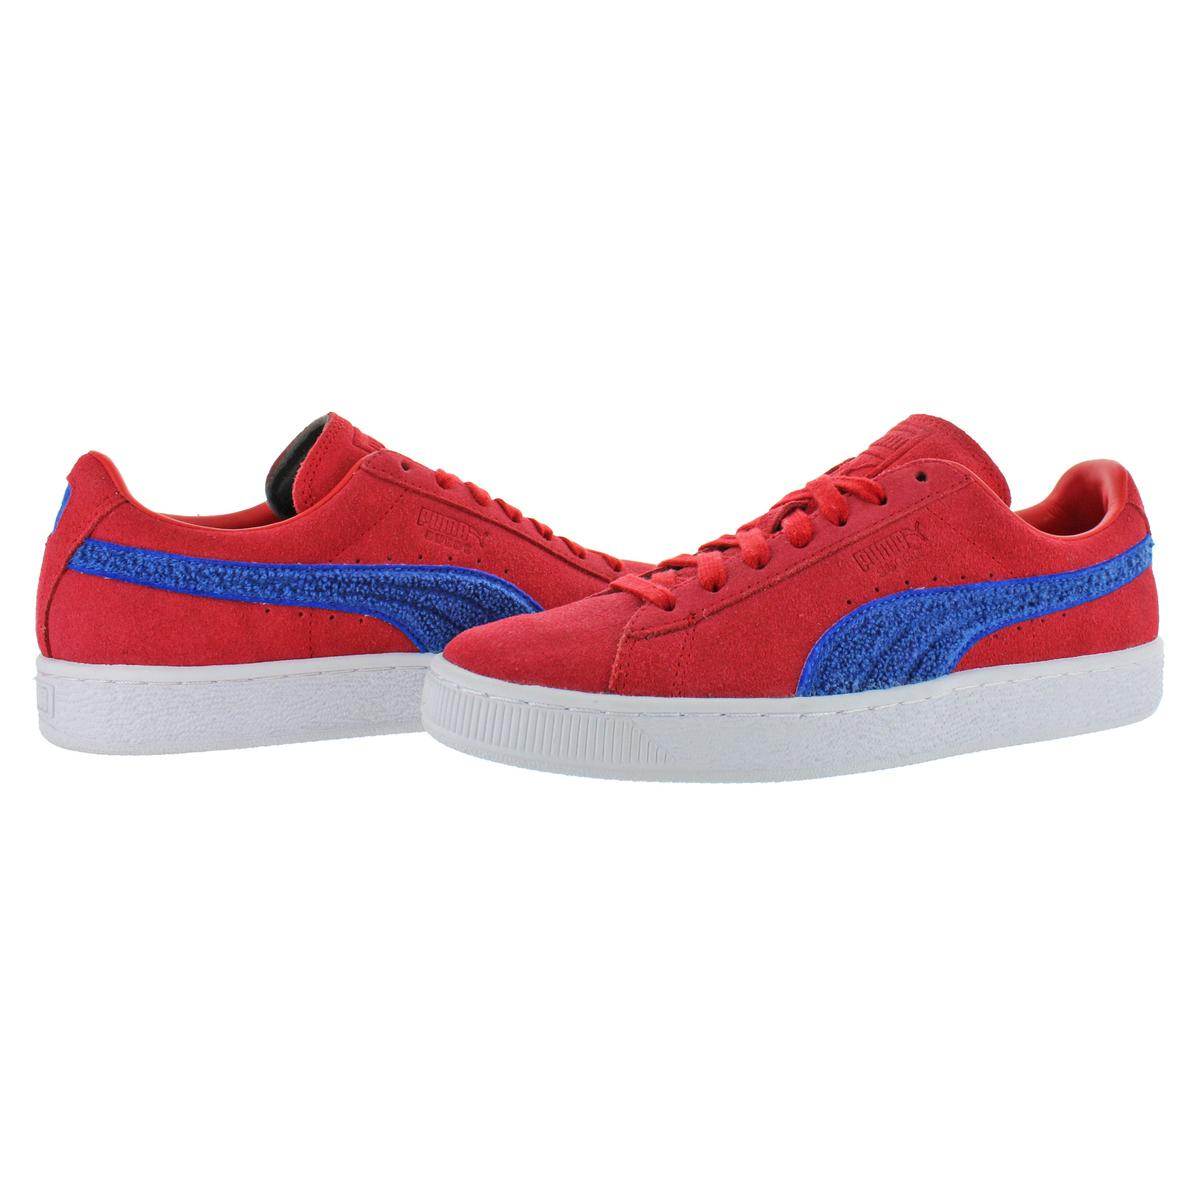 Puma-Suede-Classic-Men-039-s-Fashion-Sneakers-Shoes thumbnail 48